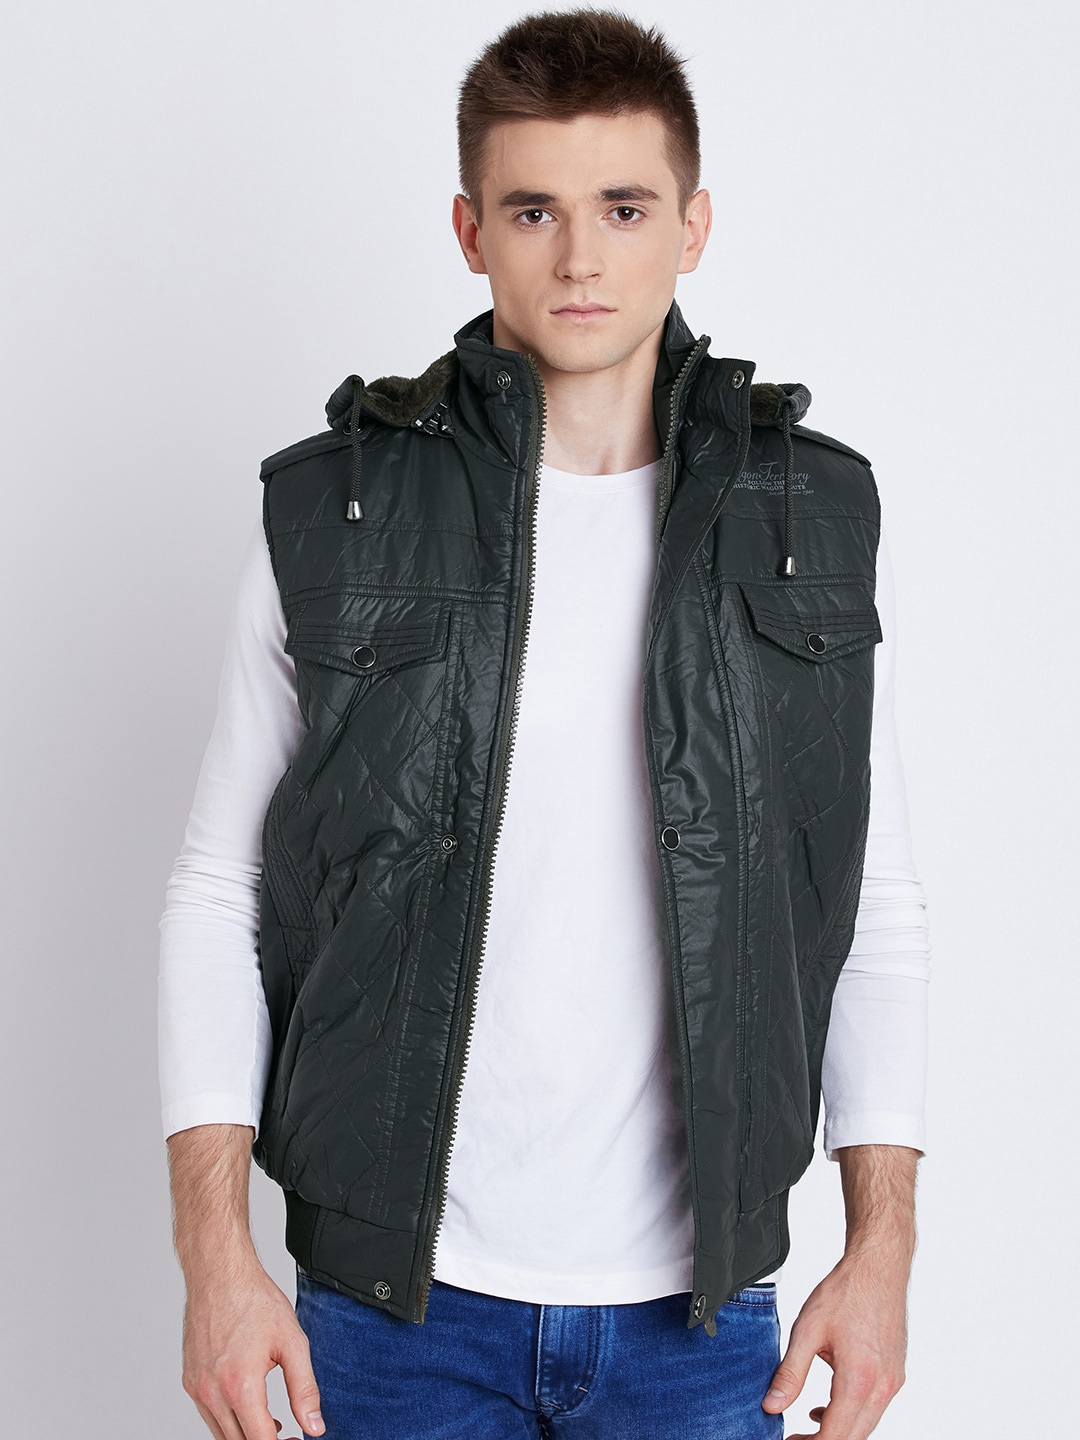 Fort Collins Green Sleeveless Quilted Jacket with Detachable Hood image